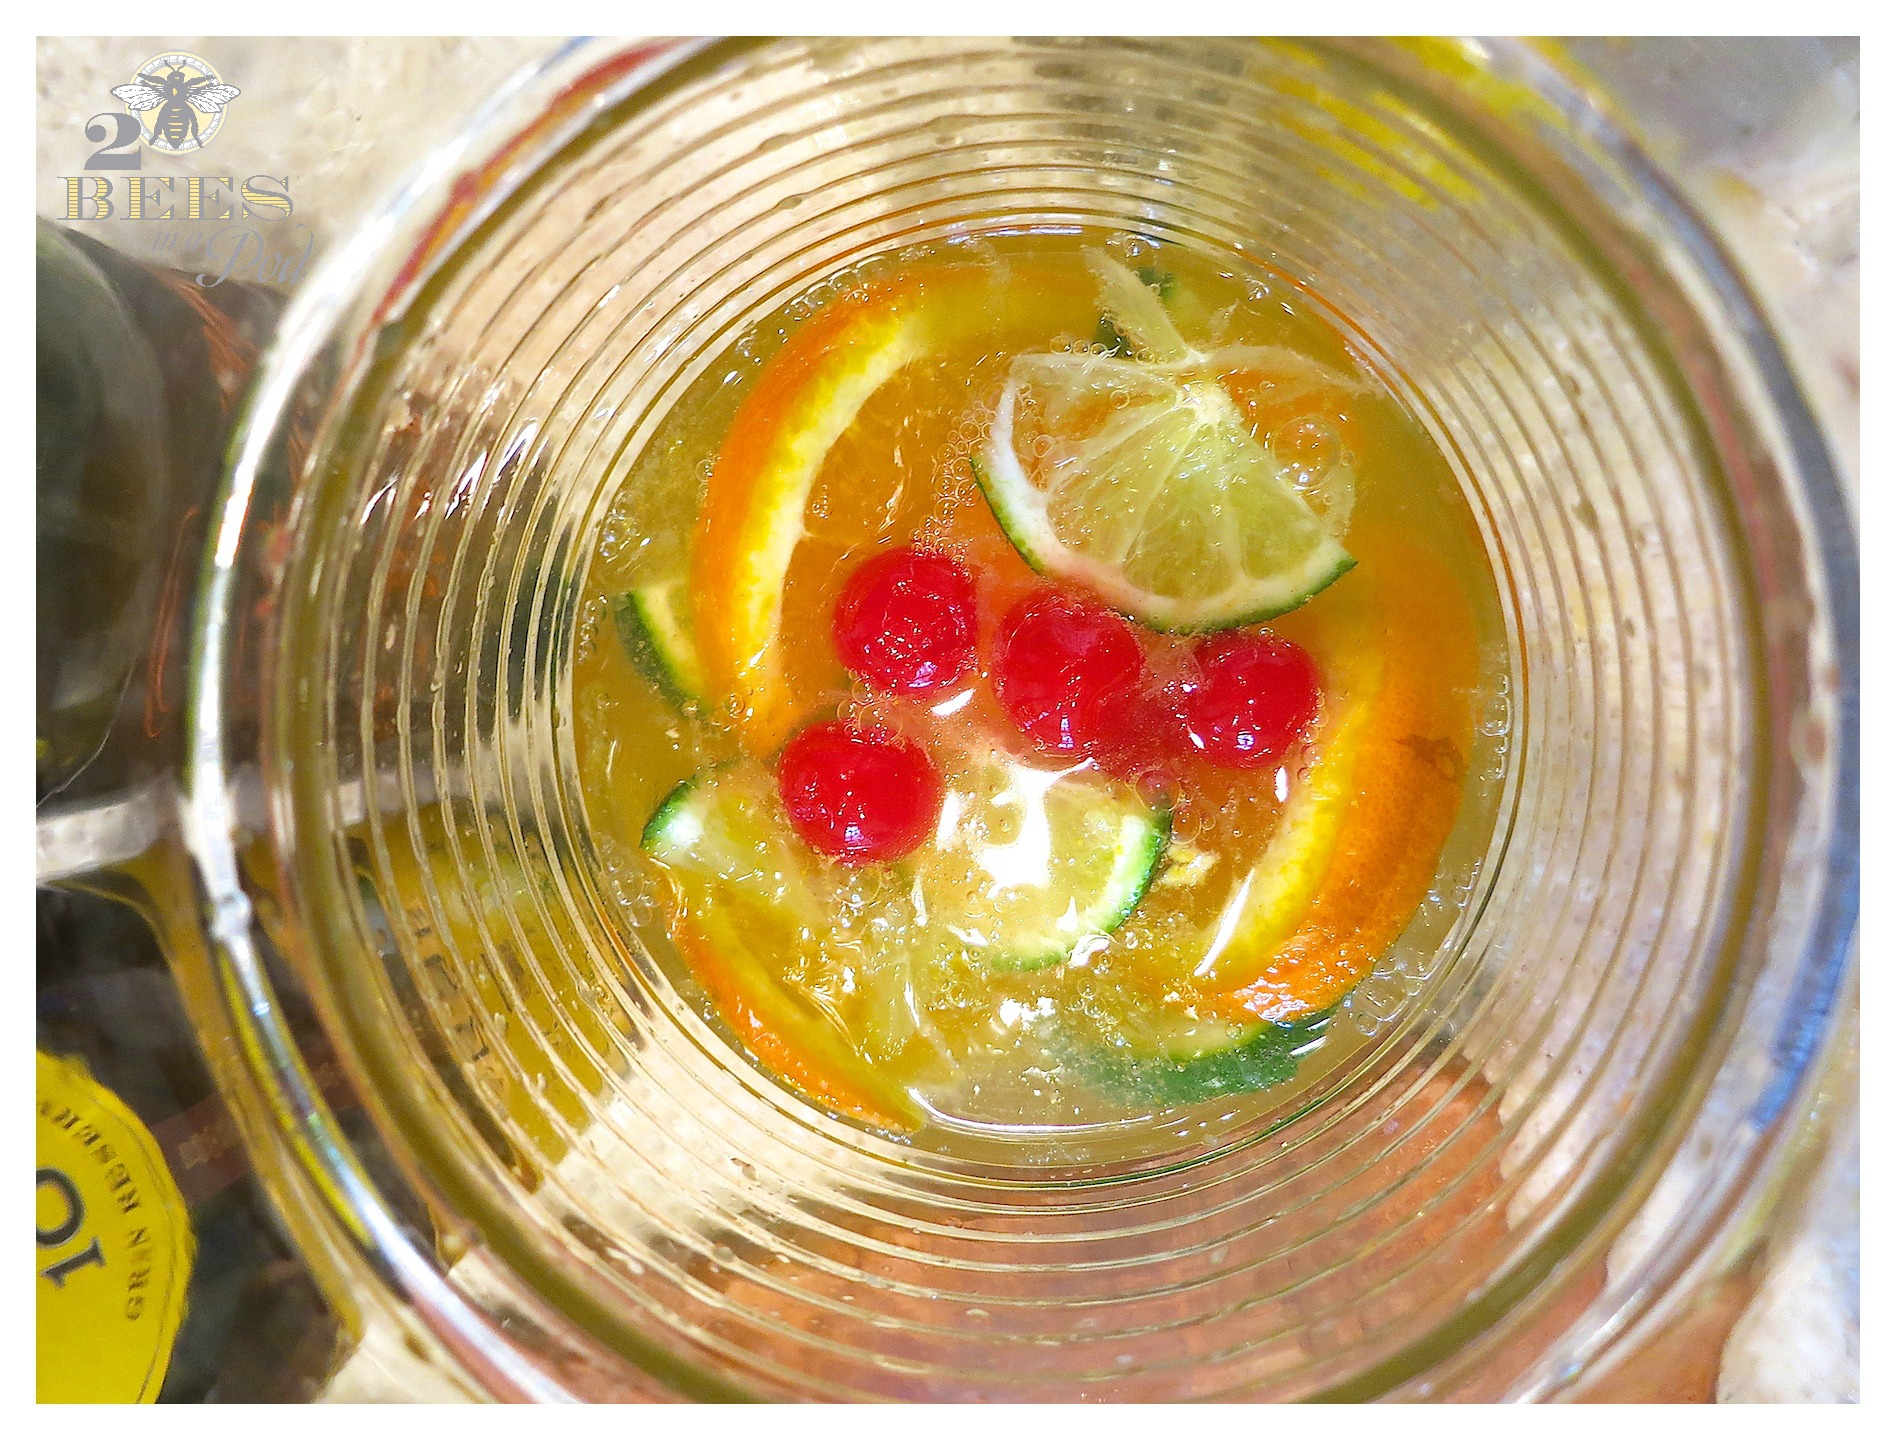 Sparkling White Sangria - Perfect for Spring and Summer - light citrus cocktail